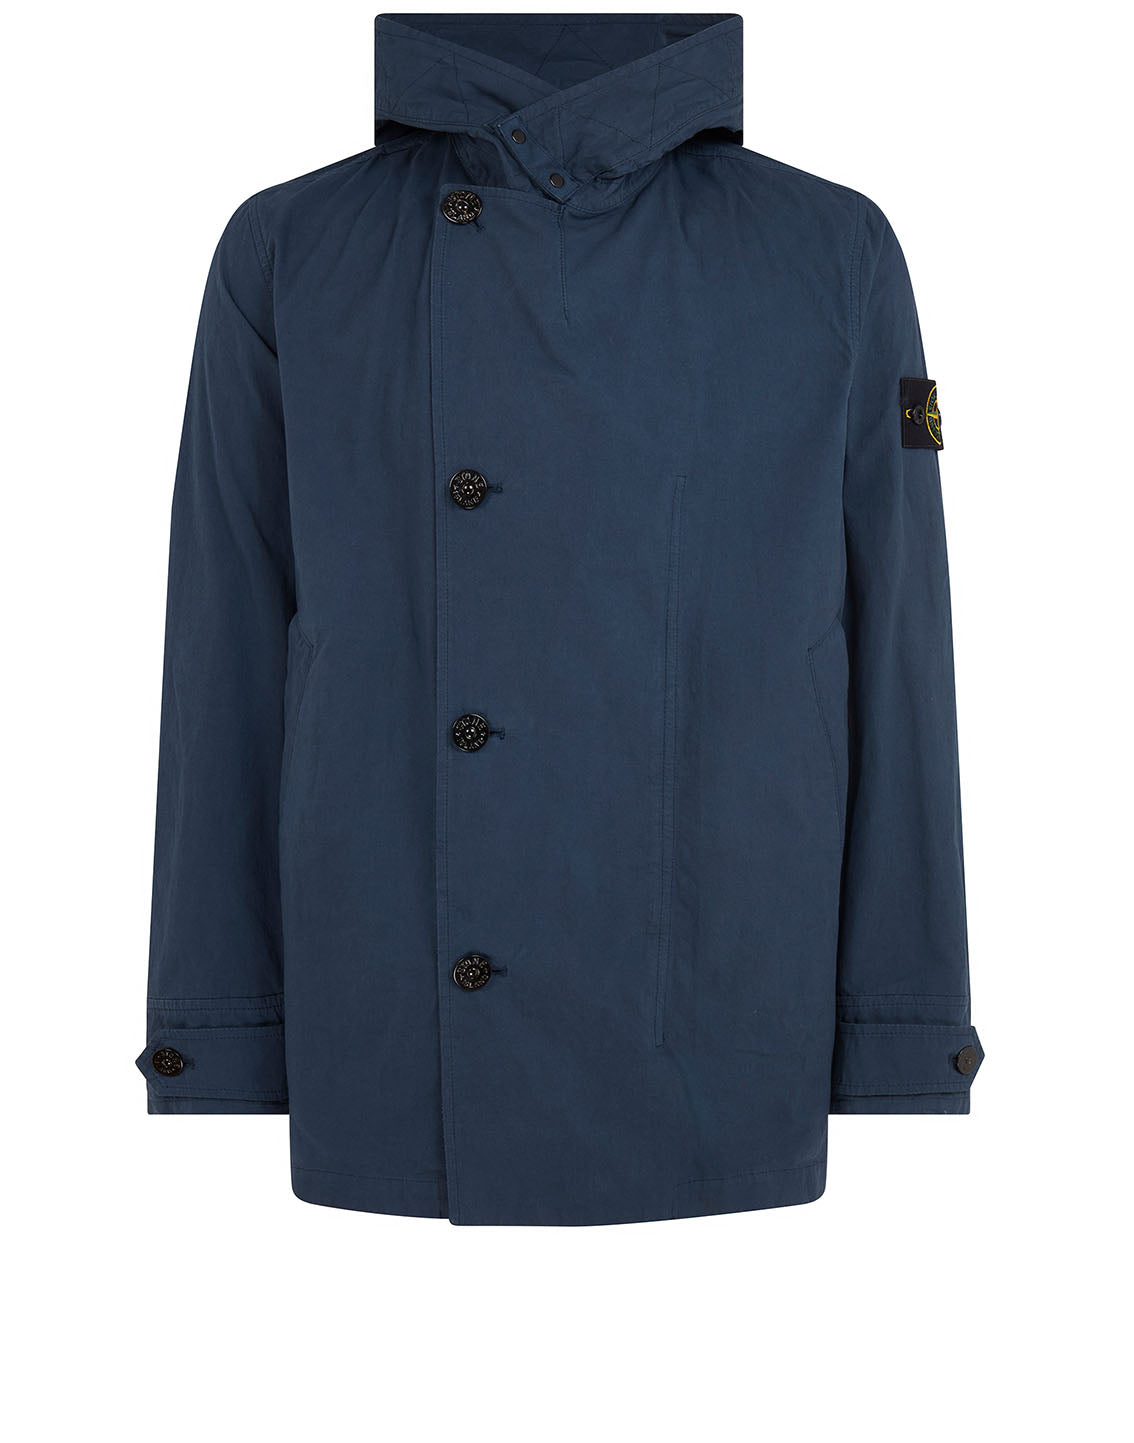 42021 COTTON / CORDURA® Jacket in Blue Marine